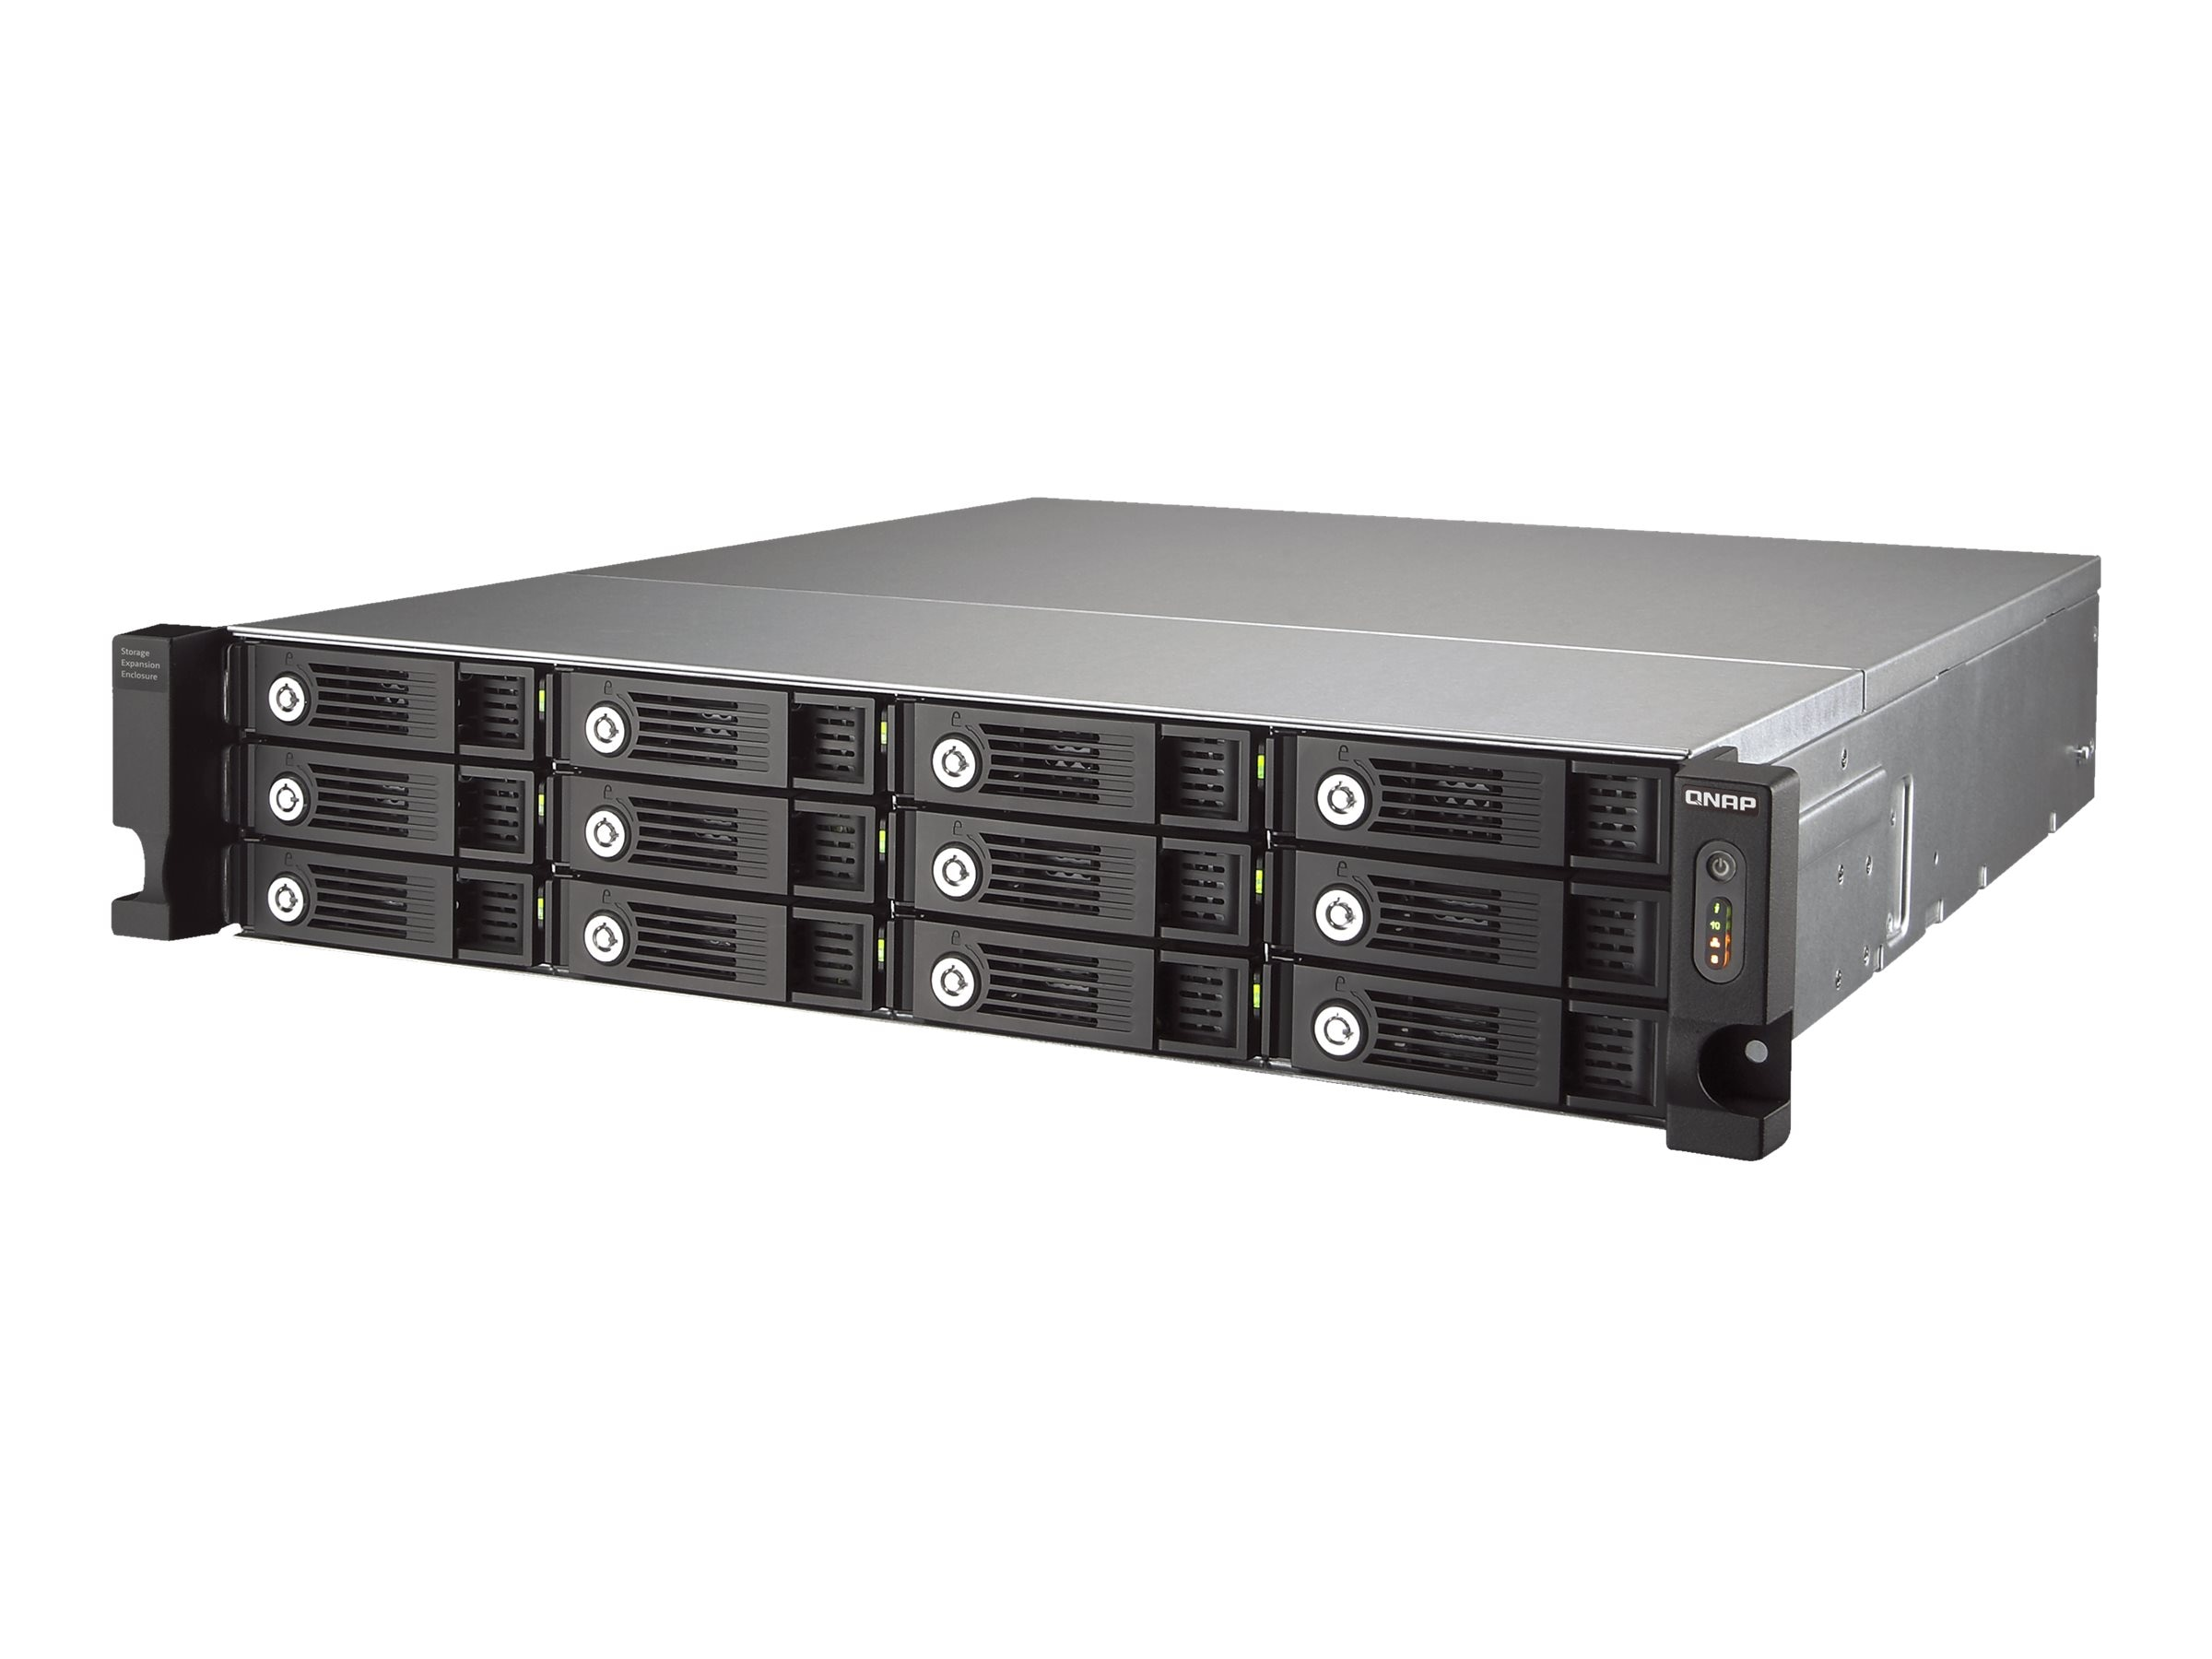 Qnap 12-Bay SATA 6Gb s Rack Expansion Enclosure